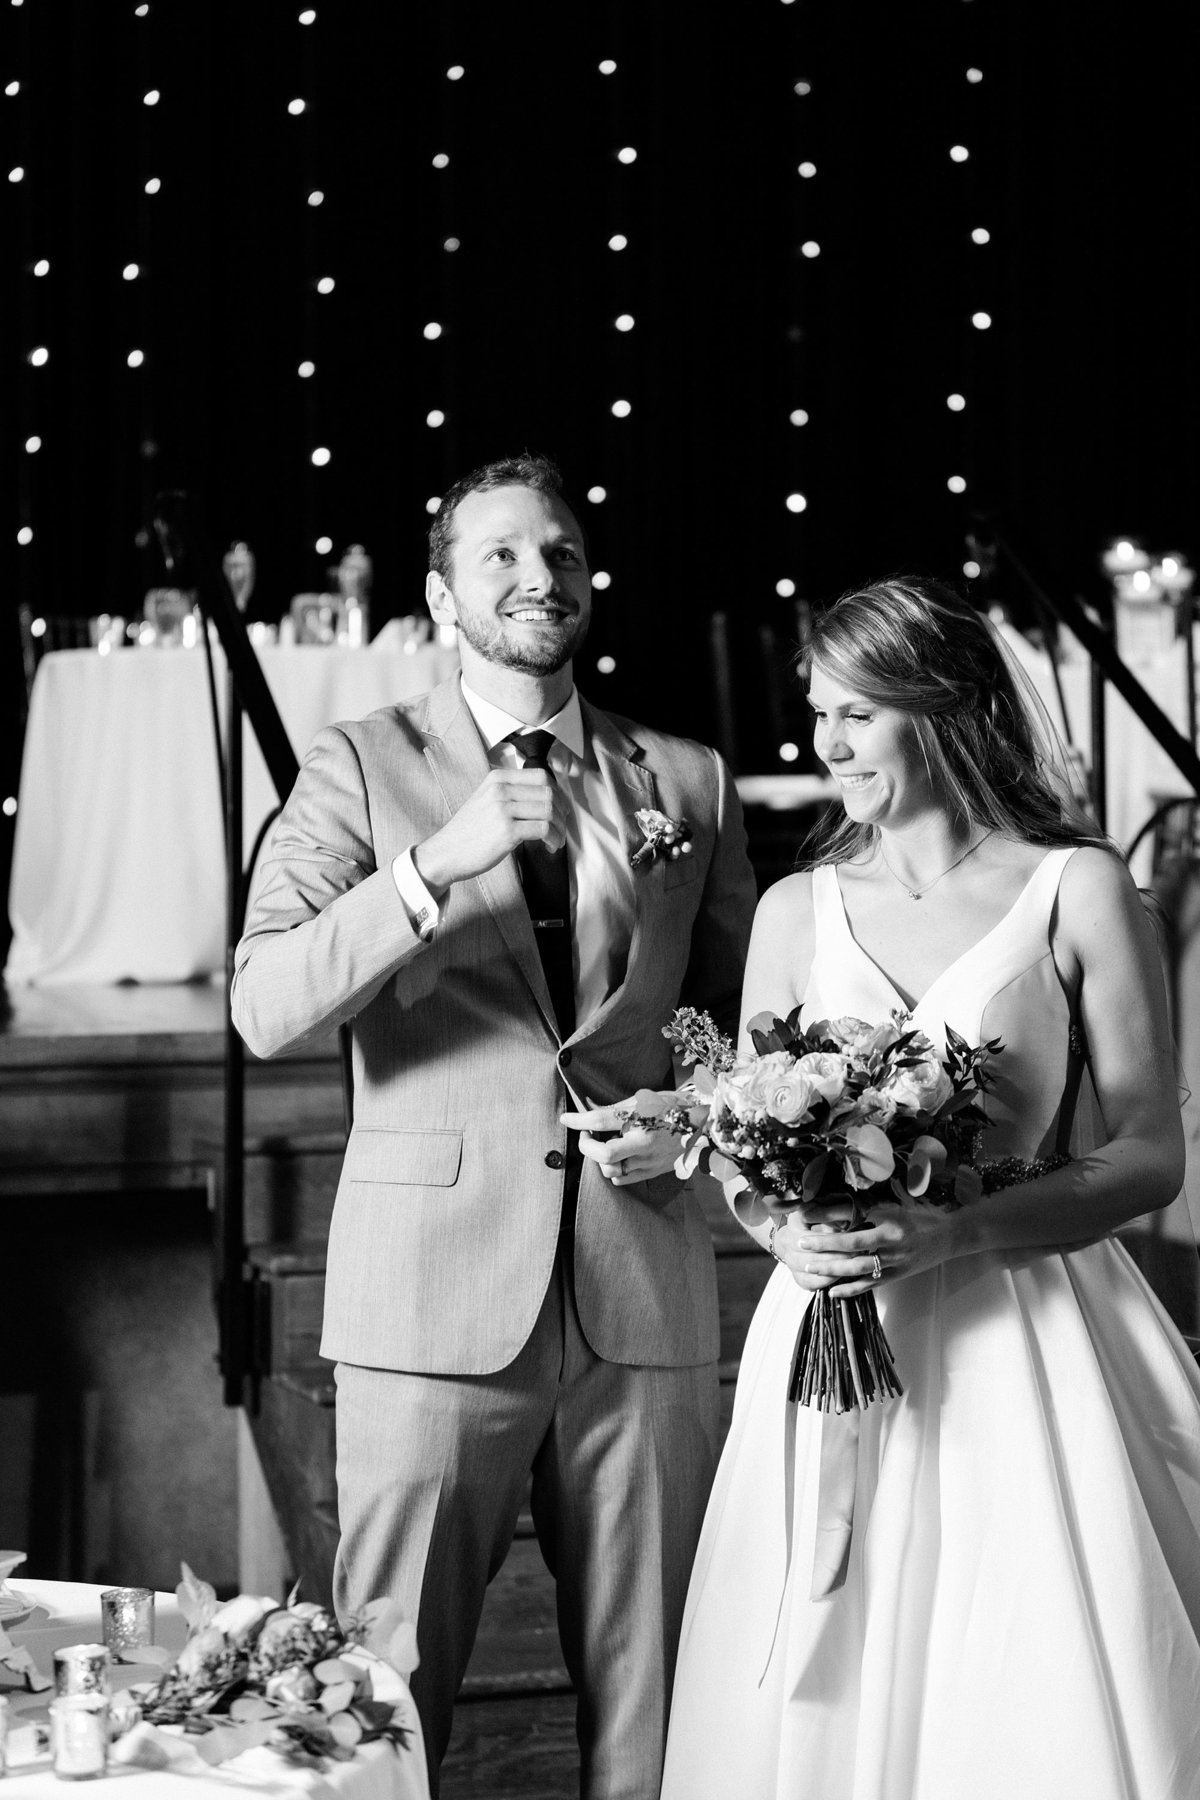 Dana-Aaron-Gem-Theatre-Wedding-2018-Detroit-Michigan-Breanne-Rochelle-Photography113